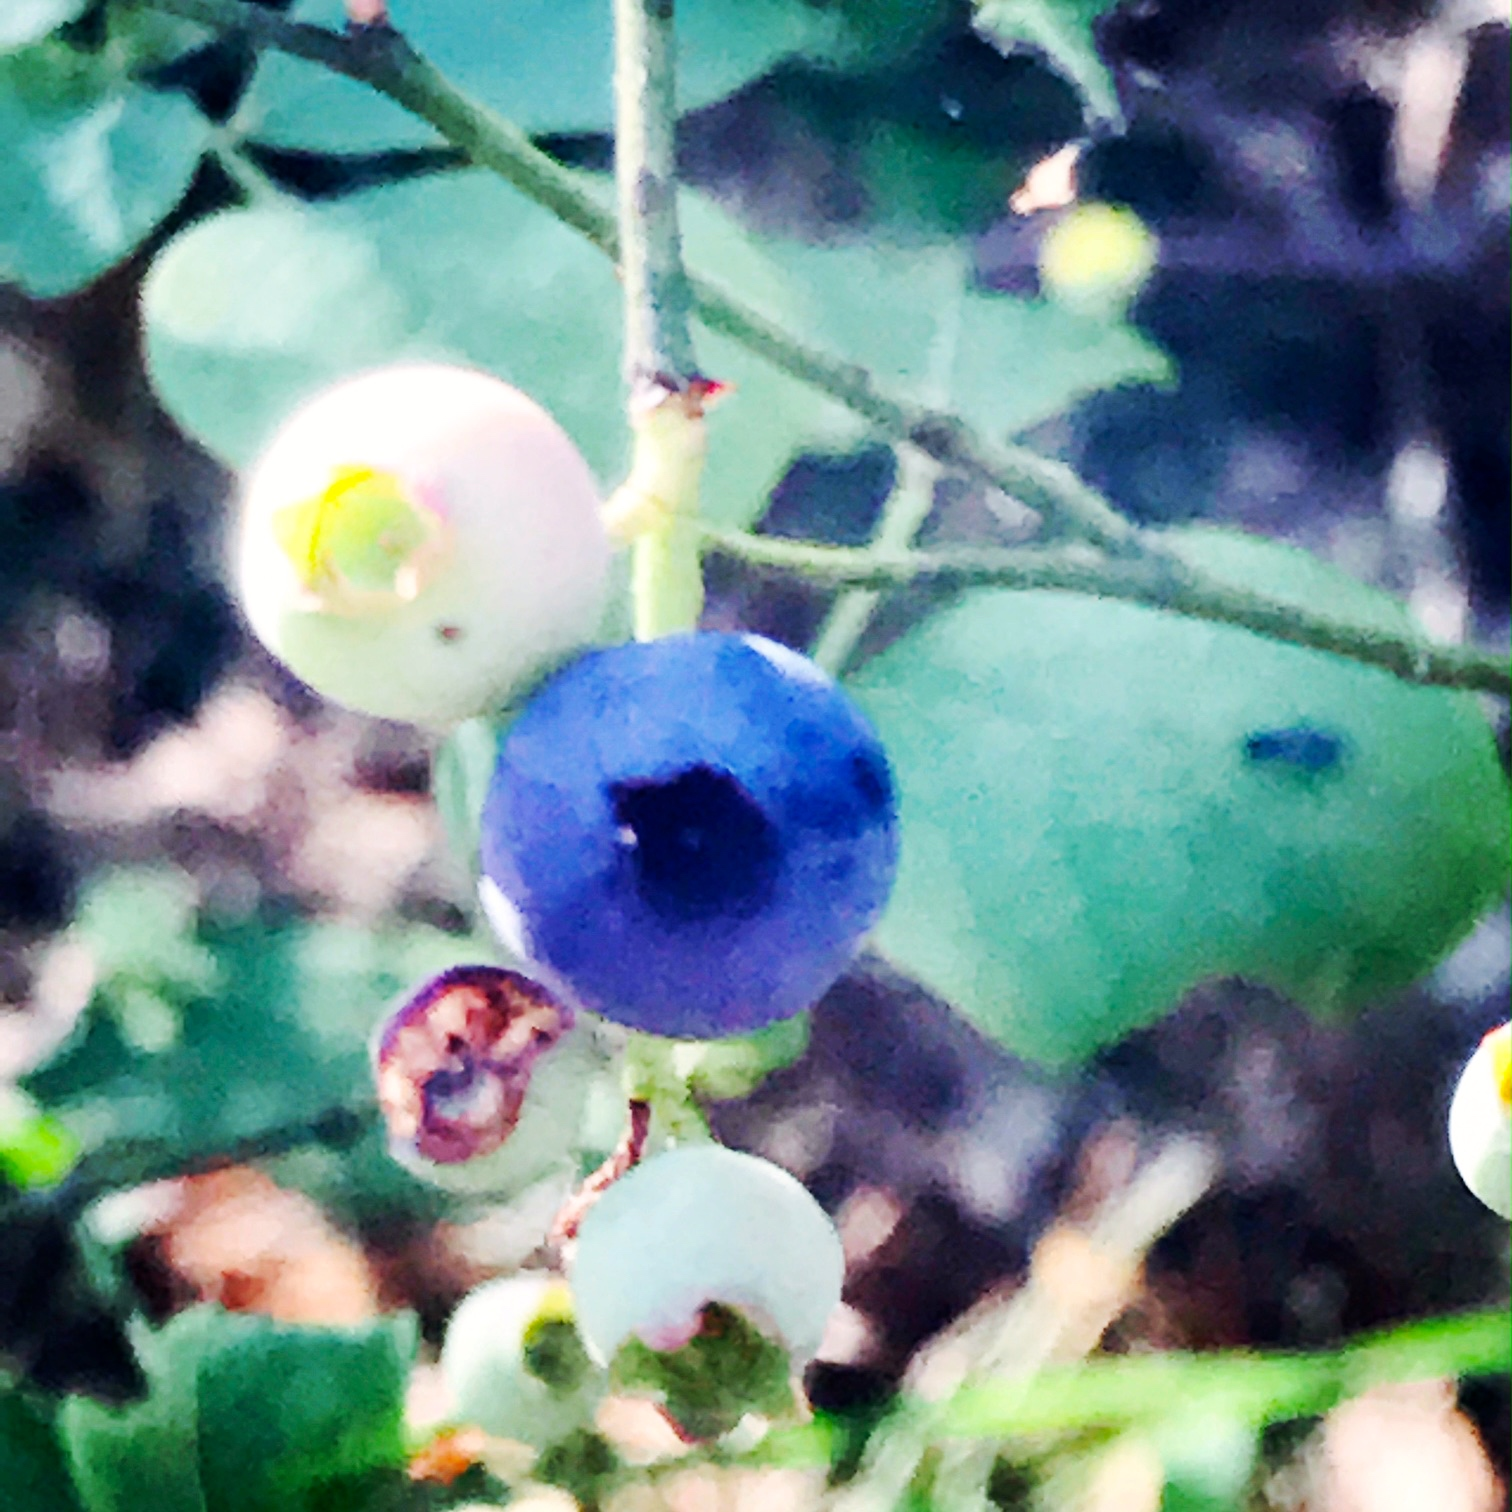 Wild blueberries ripening